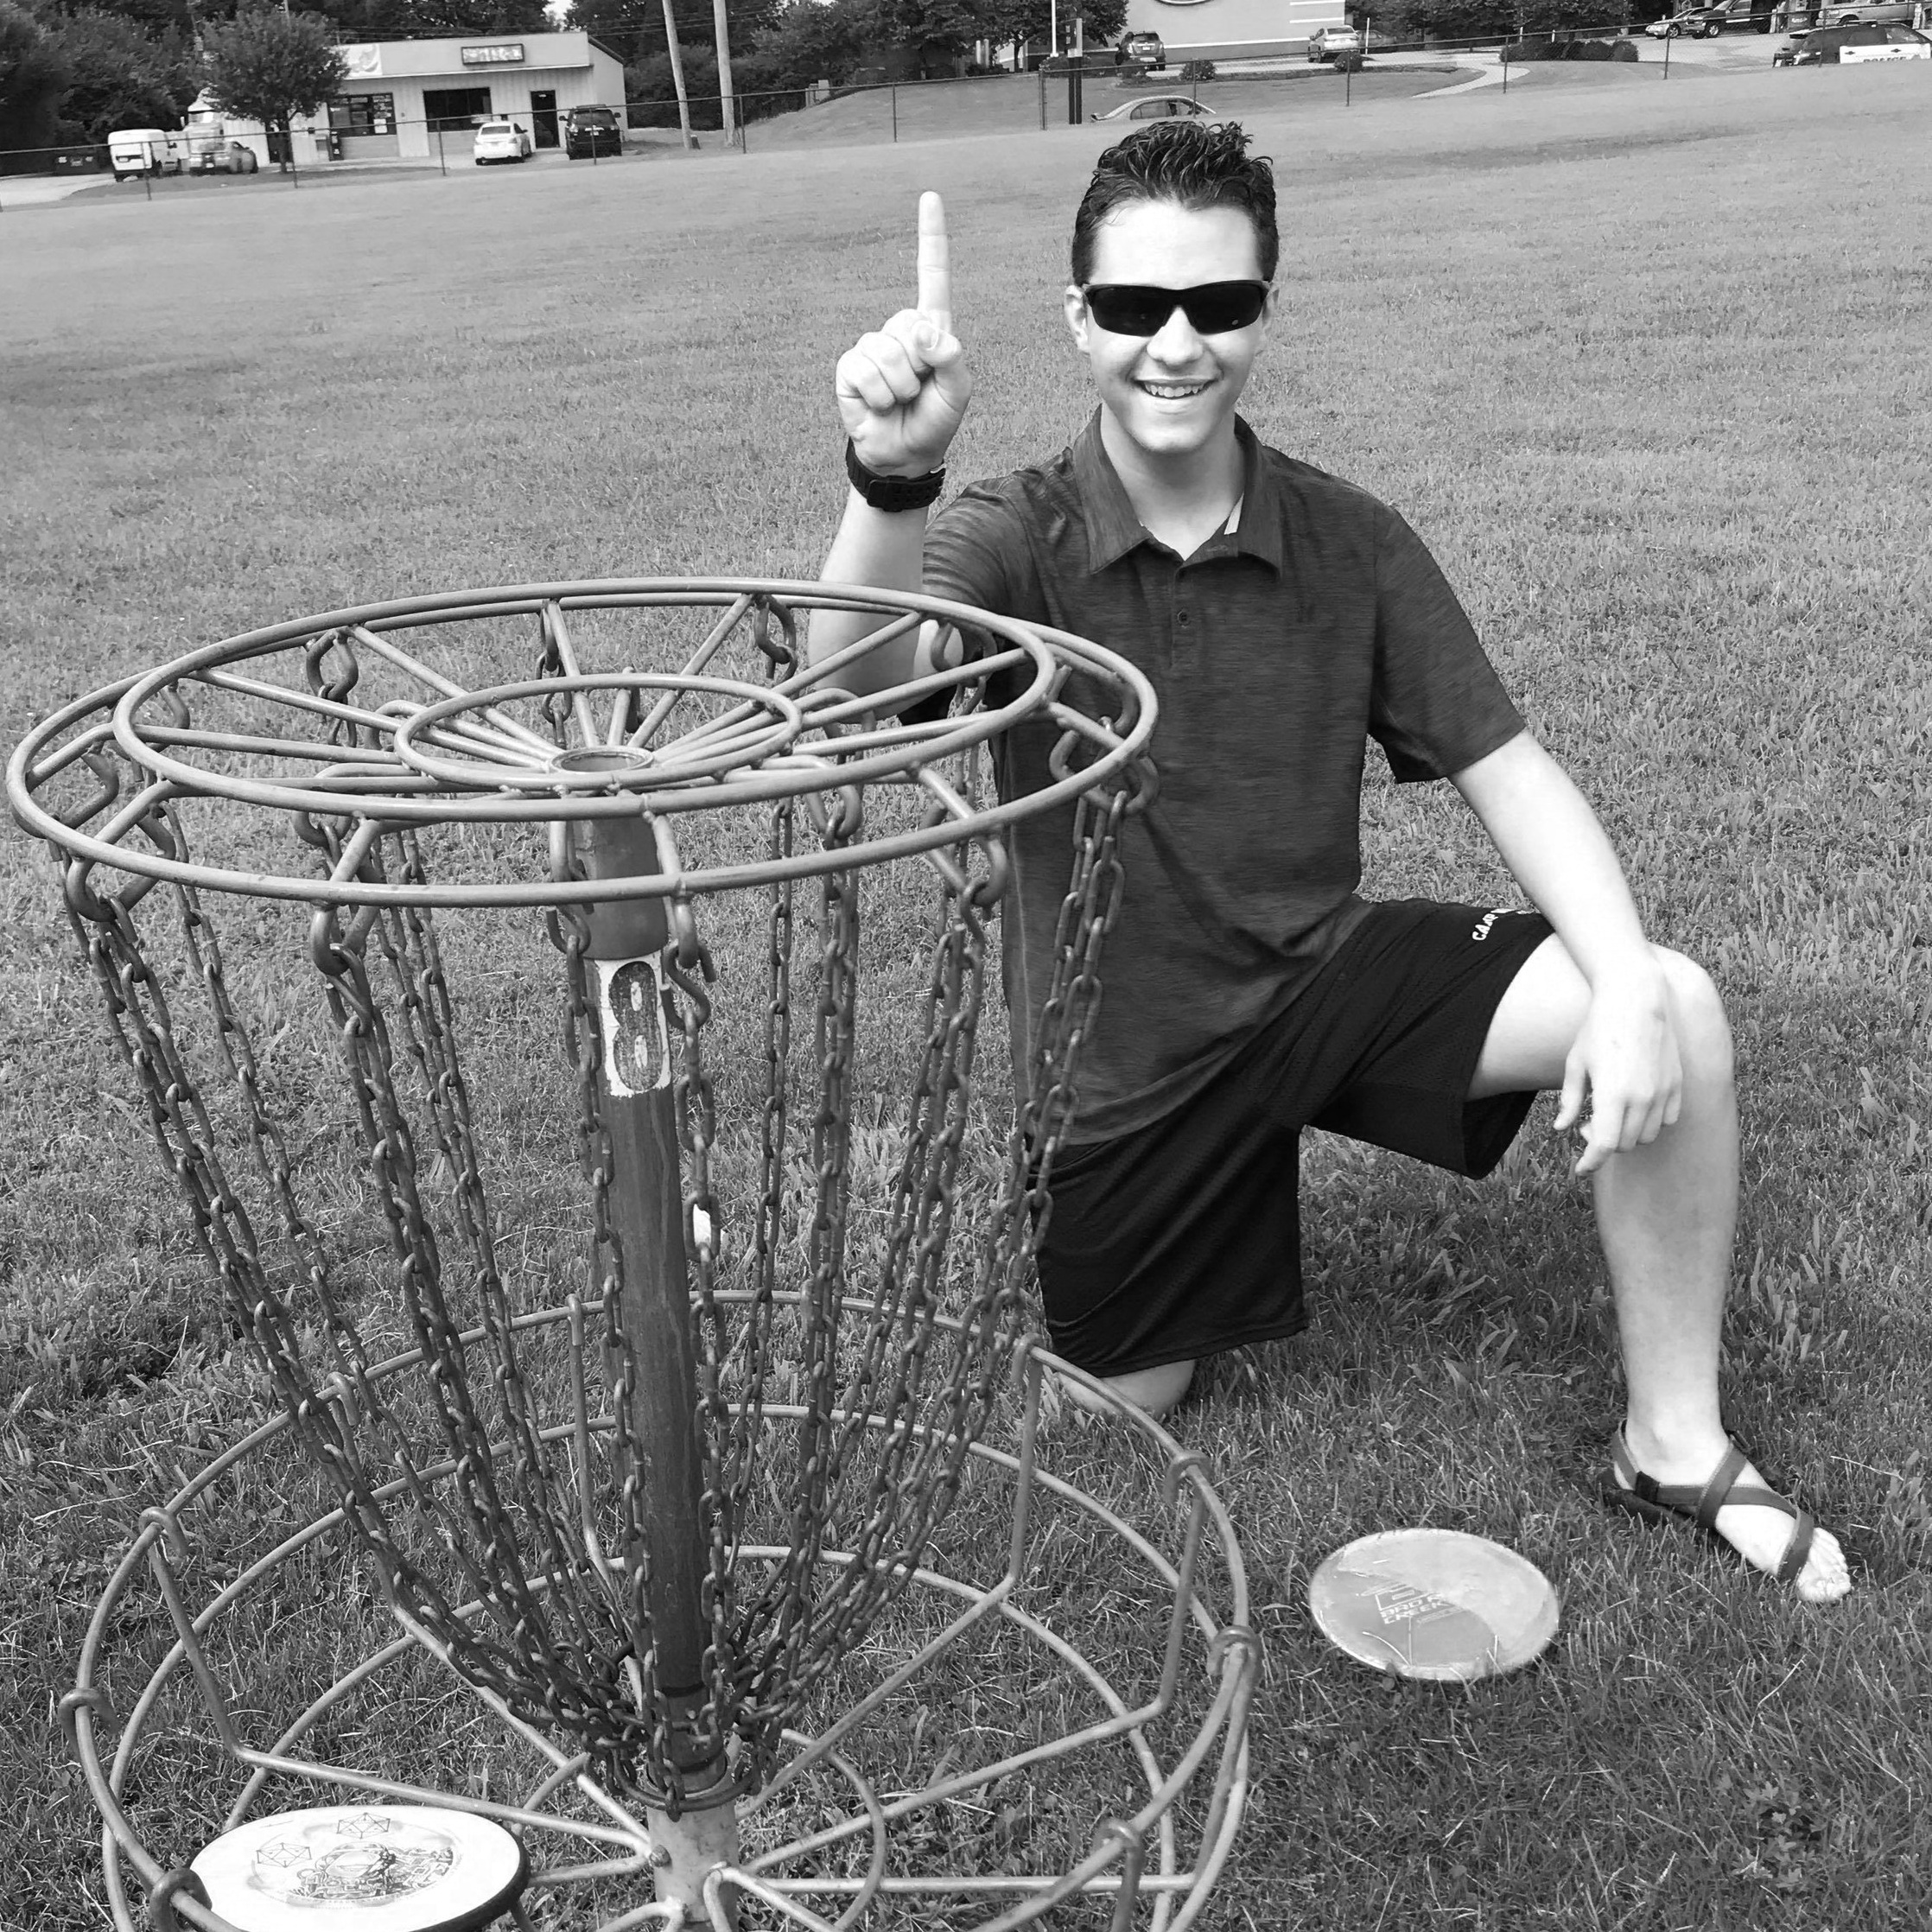 Dustin Keeler   Disc Golf  Disc Golf is one of the fastest growing sports in the USA right now and we are blessed to have some awesome courses right here within a 5-30 min range. It's just like playing real golf but with a Frisbee. This group will meet twice per month or more for spontaneous disc golf play and fellowship. There will lots of laughs and tons of fun!  Meeting Time: 2nd & 4th Sunday  Meeting Location: Siloam Springs, AR